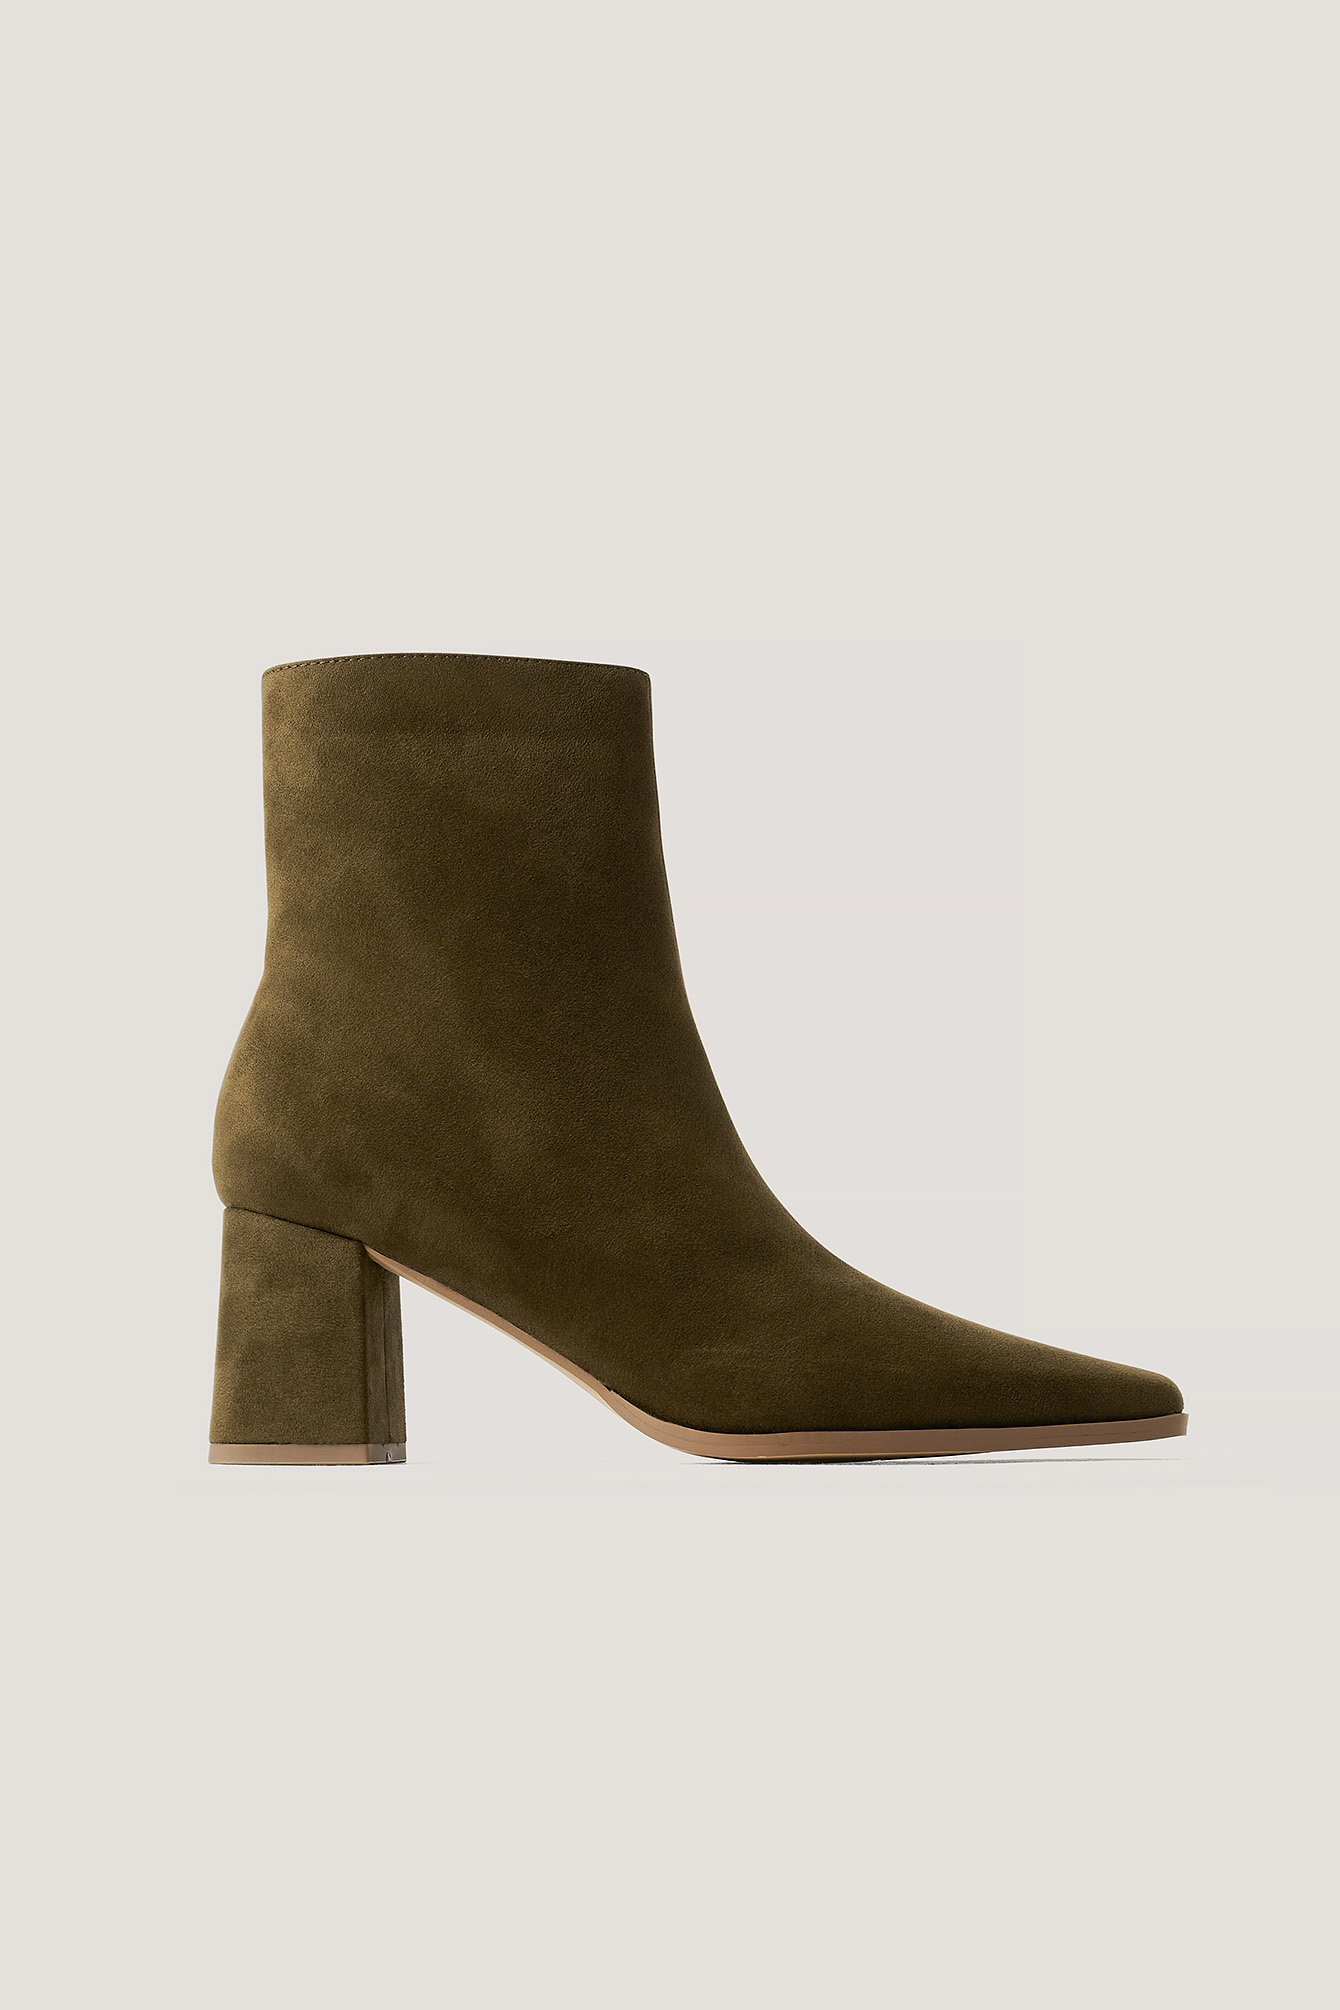 Na-Kd Shoes Faux Suede Slim Toe Boots - Green